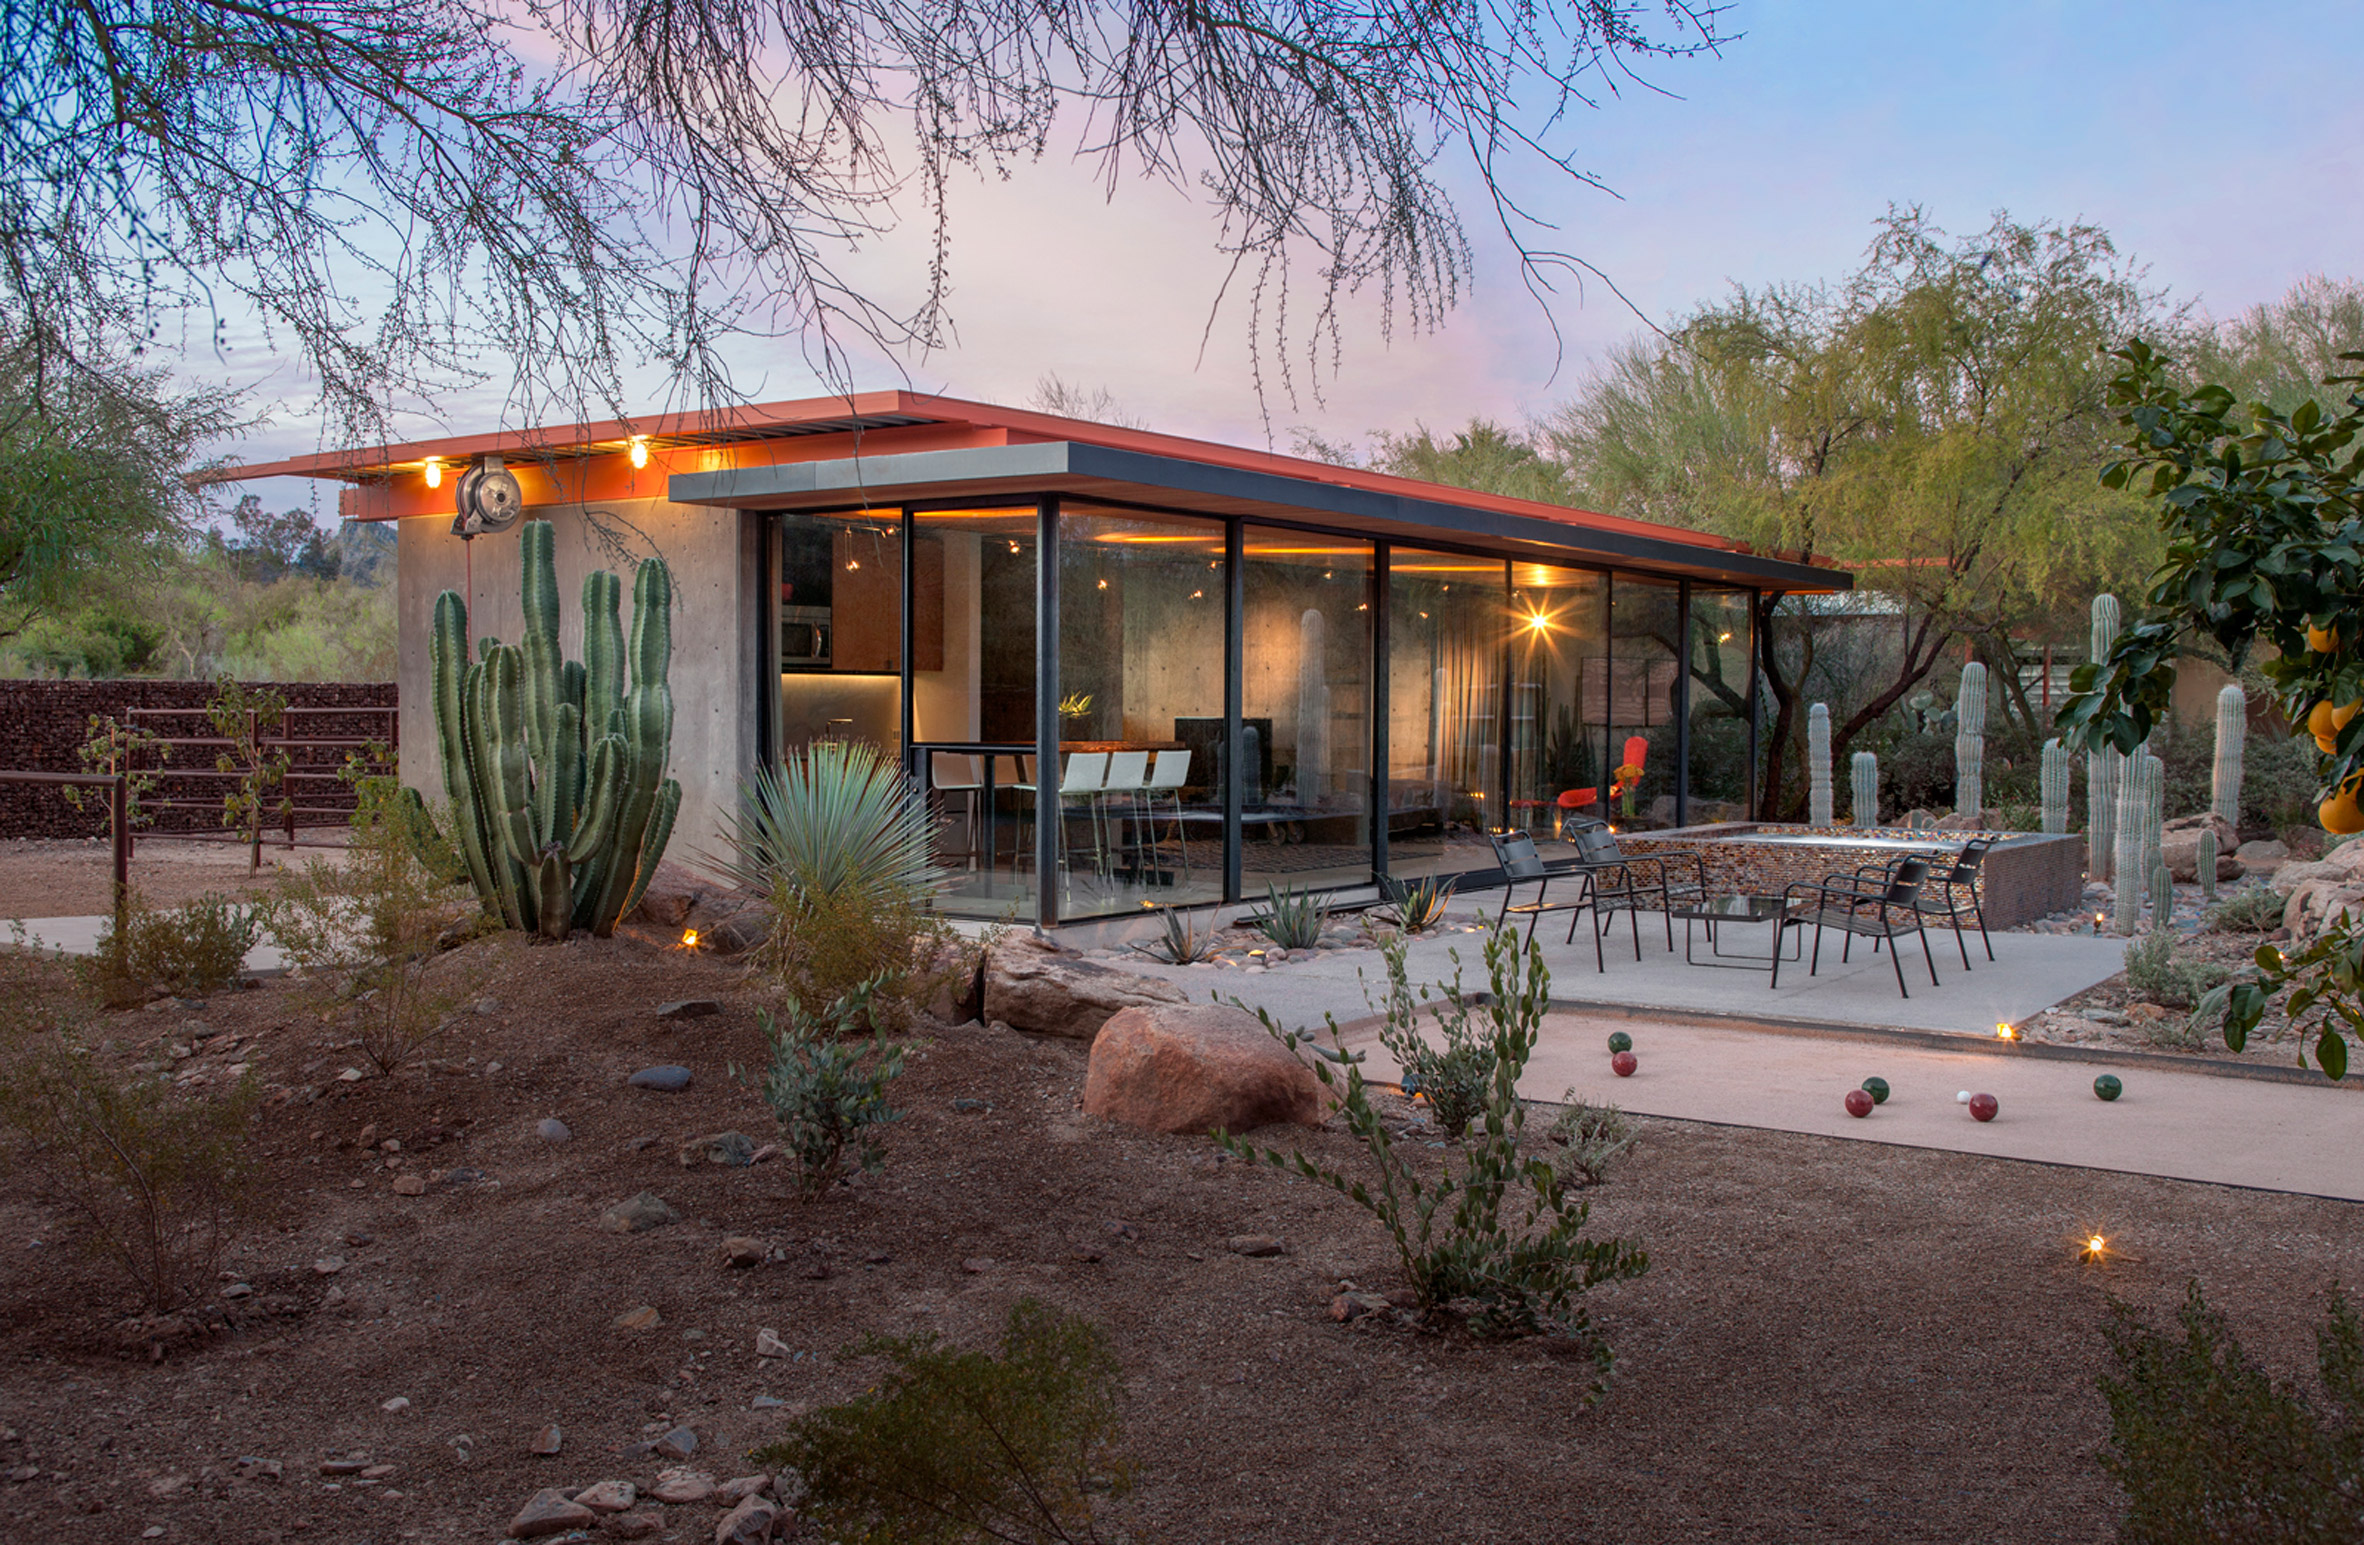 Arizona horse barn transformed into desert guest house by The Construction Zone